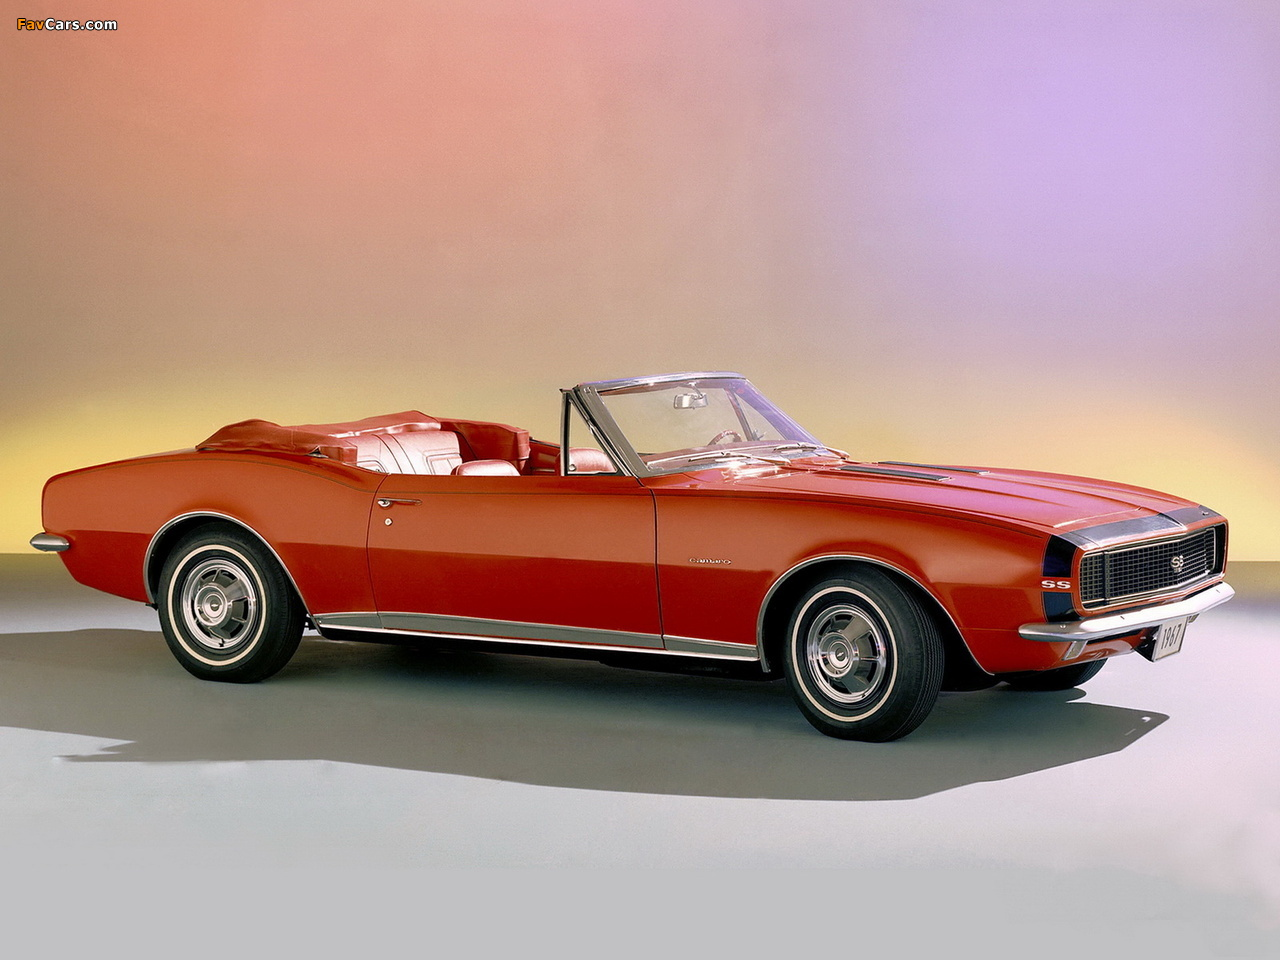 Chevrolet Camaro Rs Ss 350 Convertible 12467 1967 Images